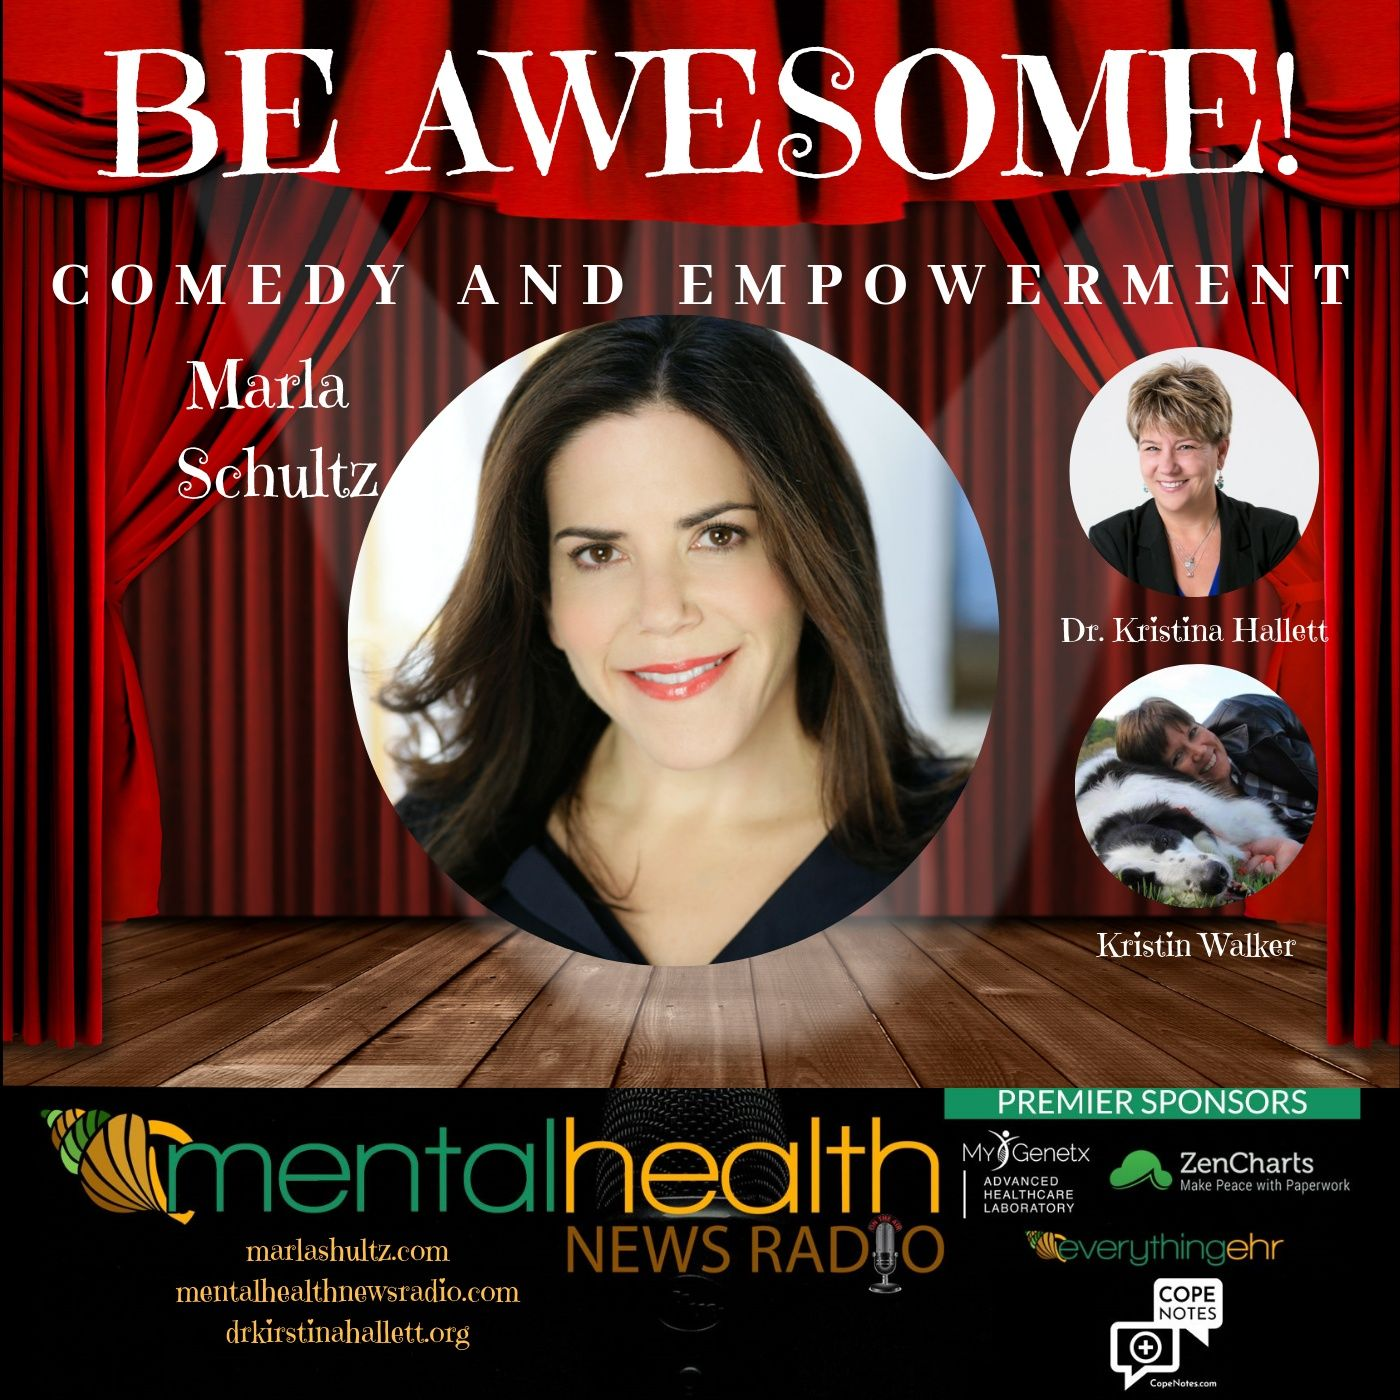 Mental Health News Radio - Be Awesome: Comedy and Empowerment with Marla Schultz